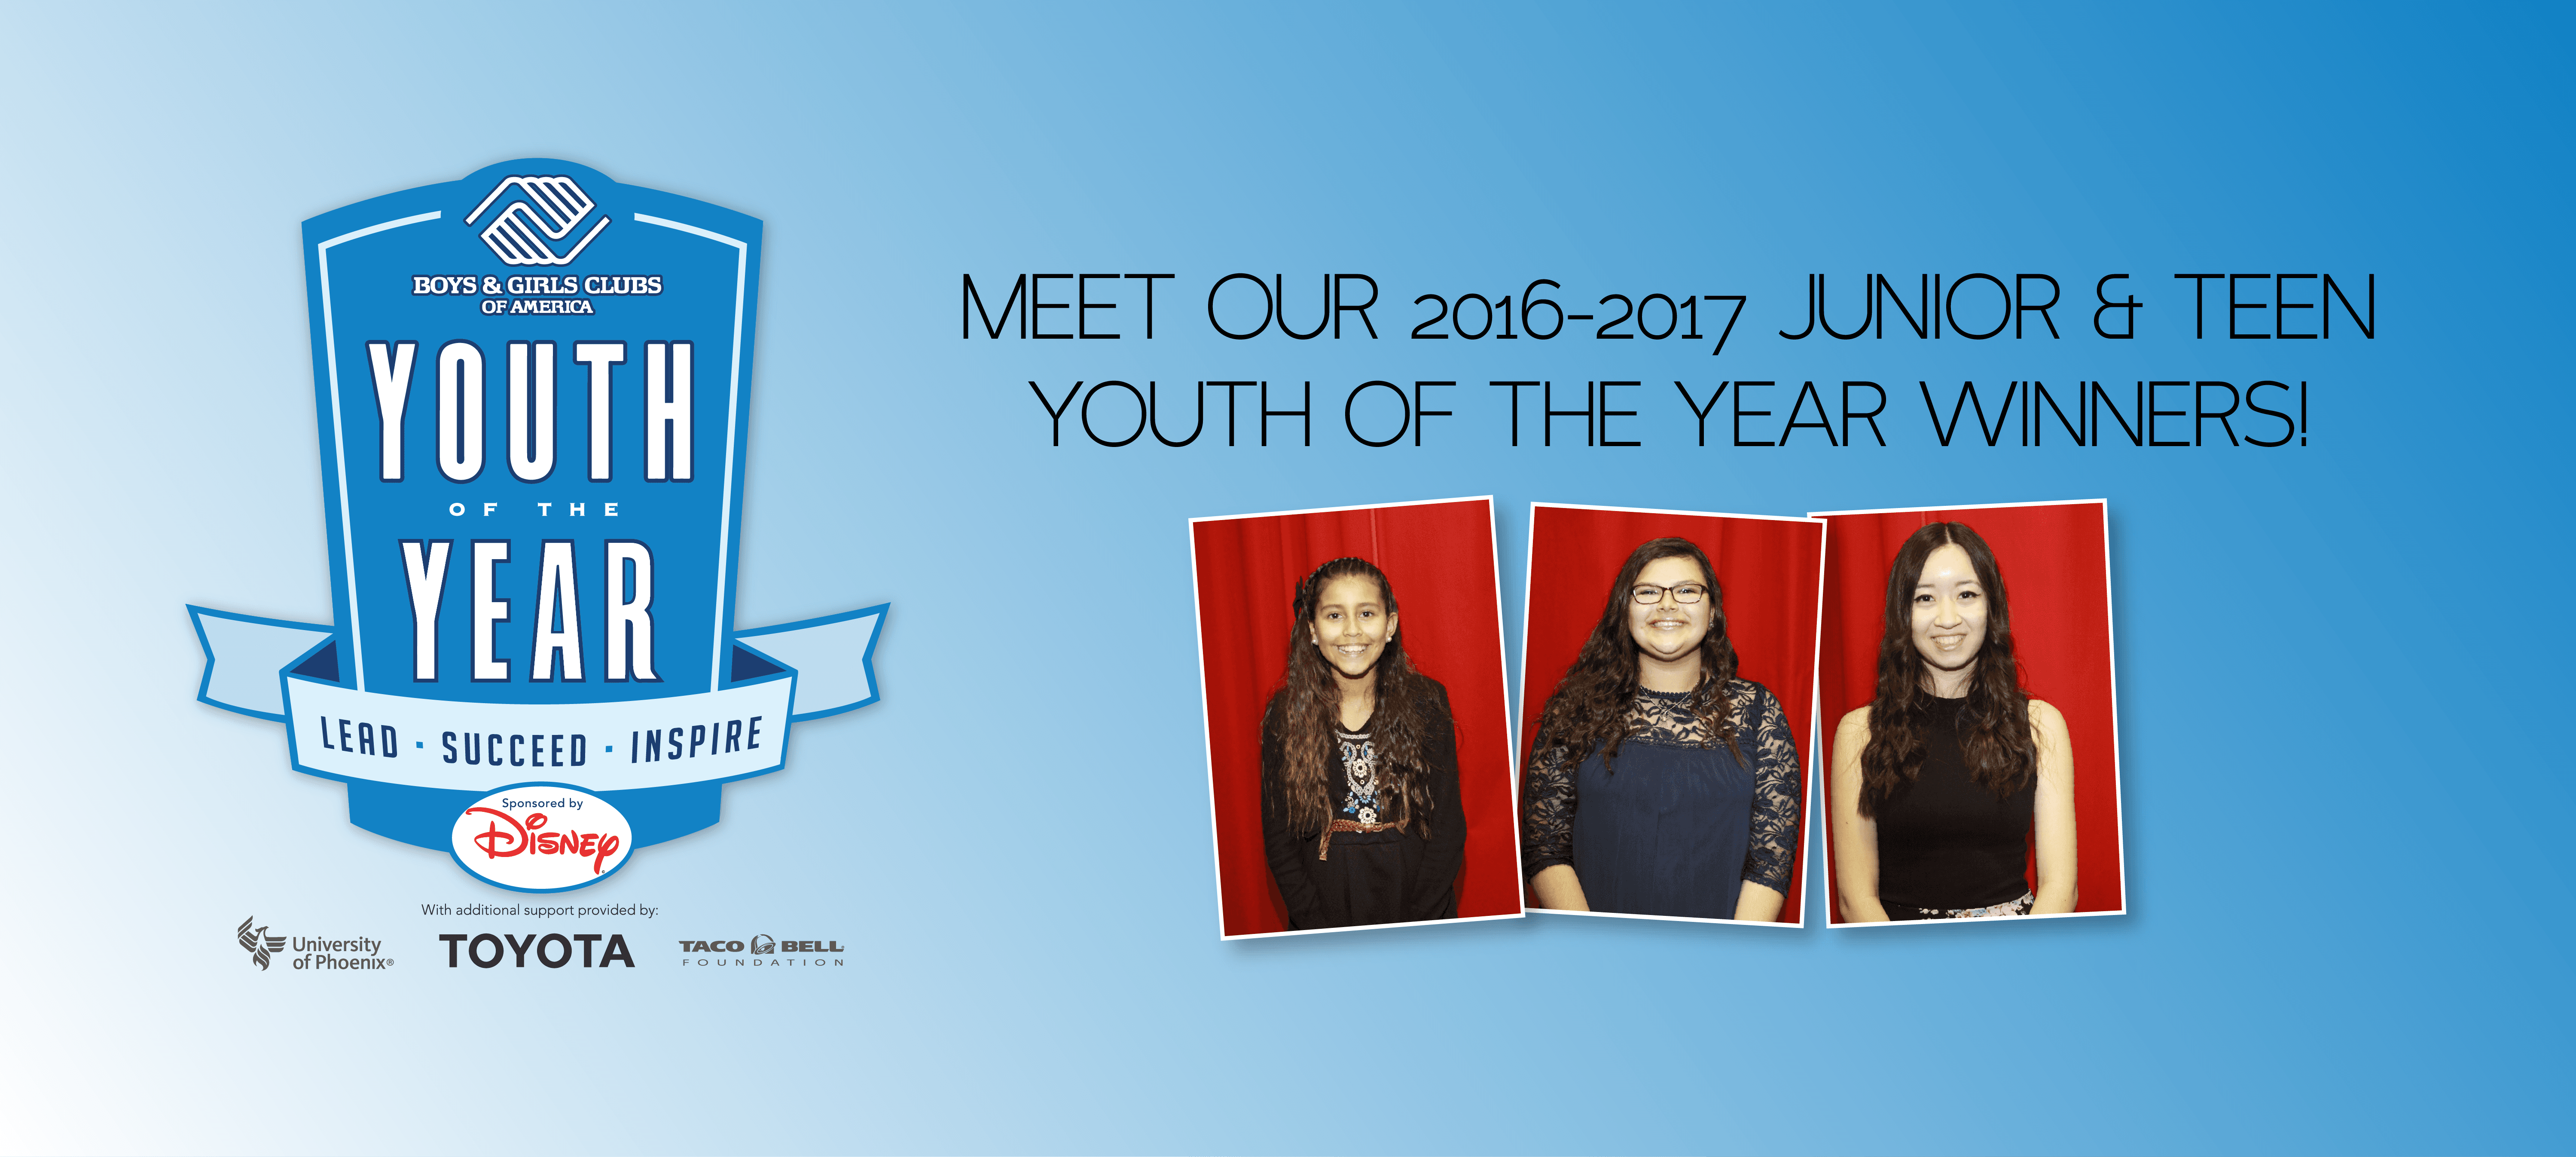 Meet our 2016-2017 Youth of the Year!